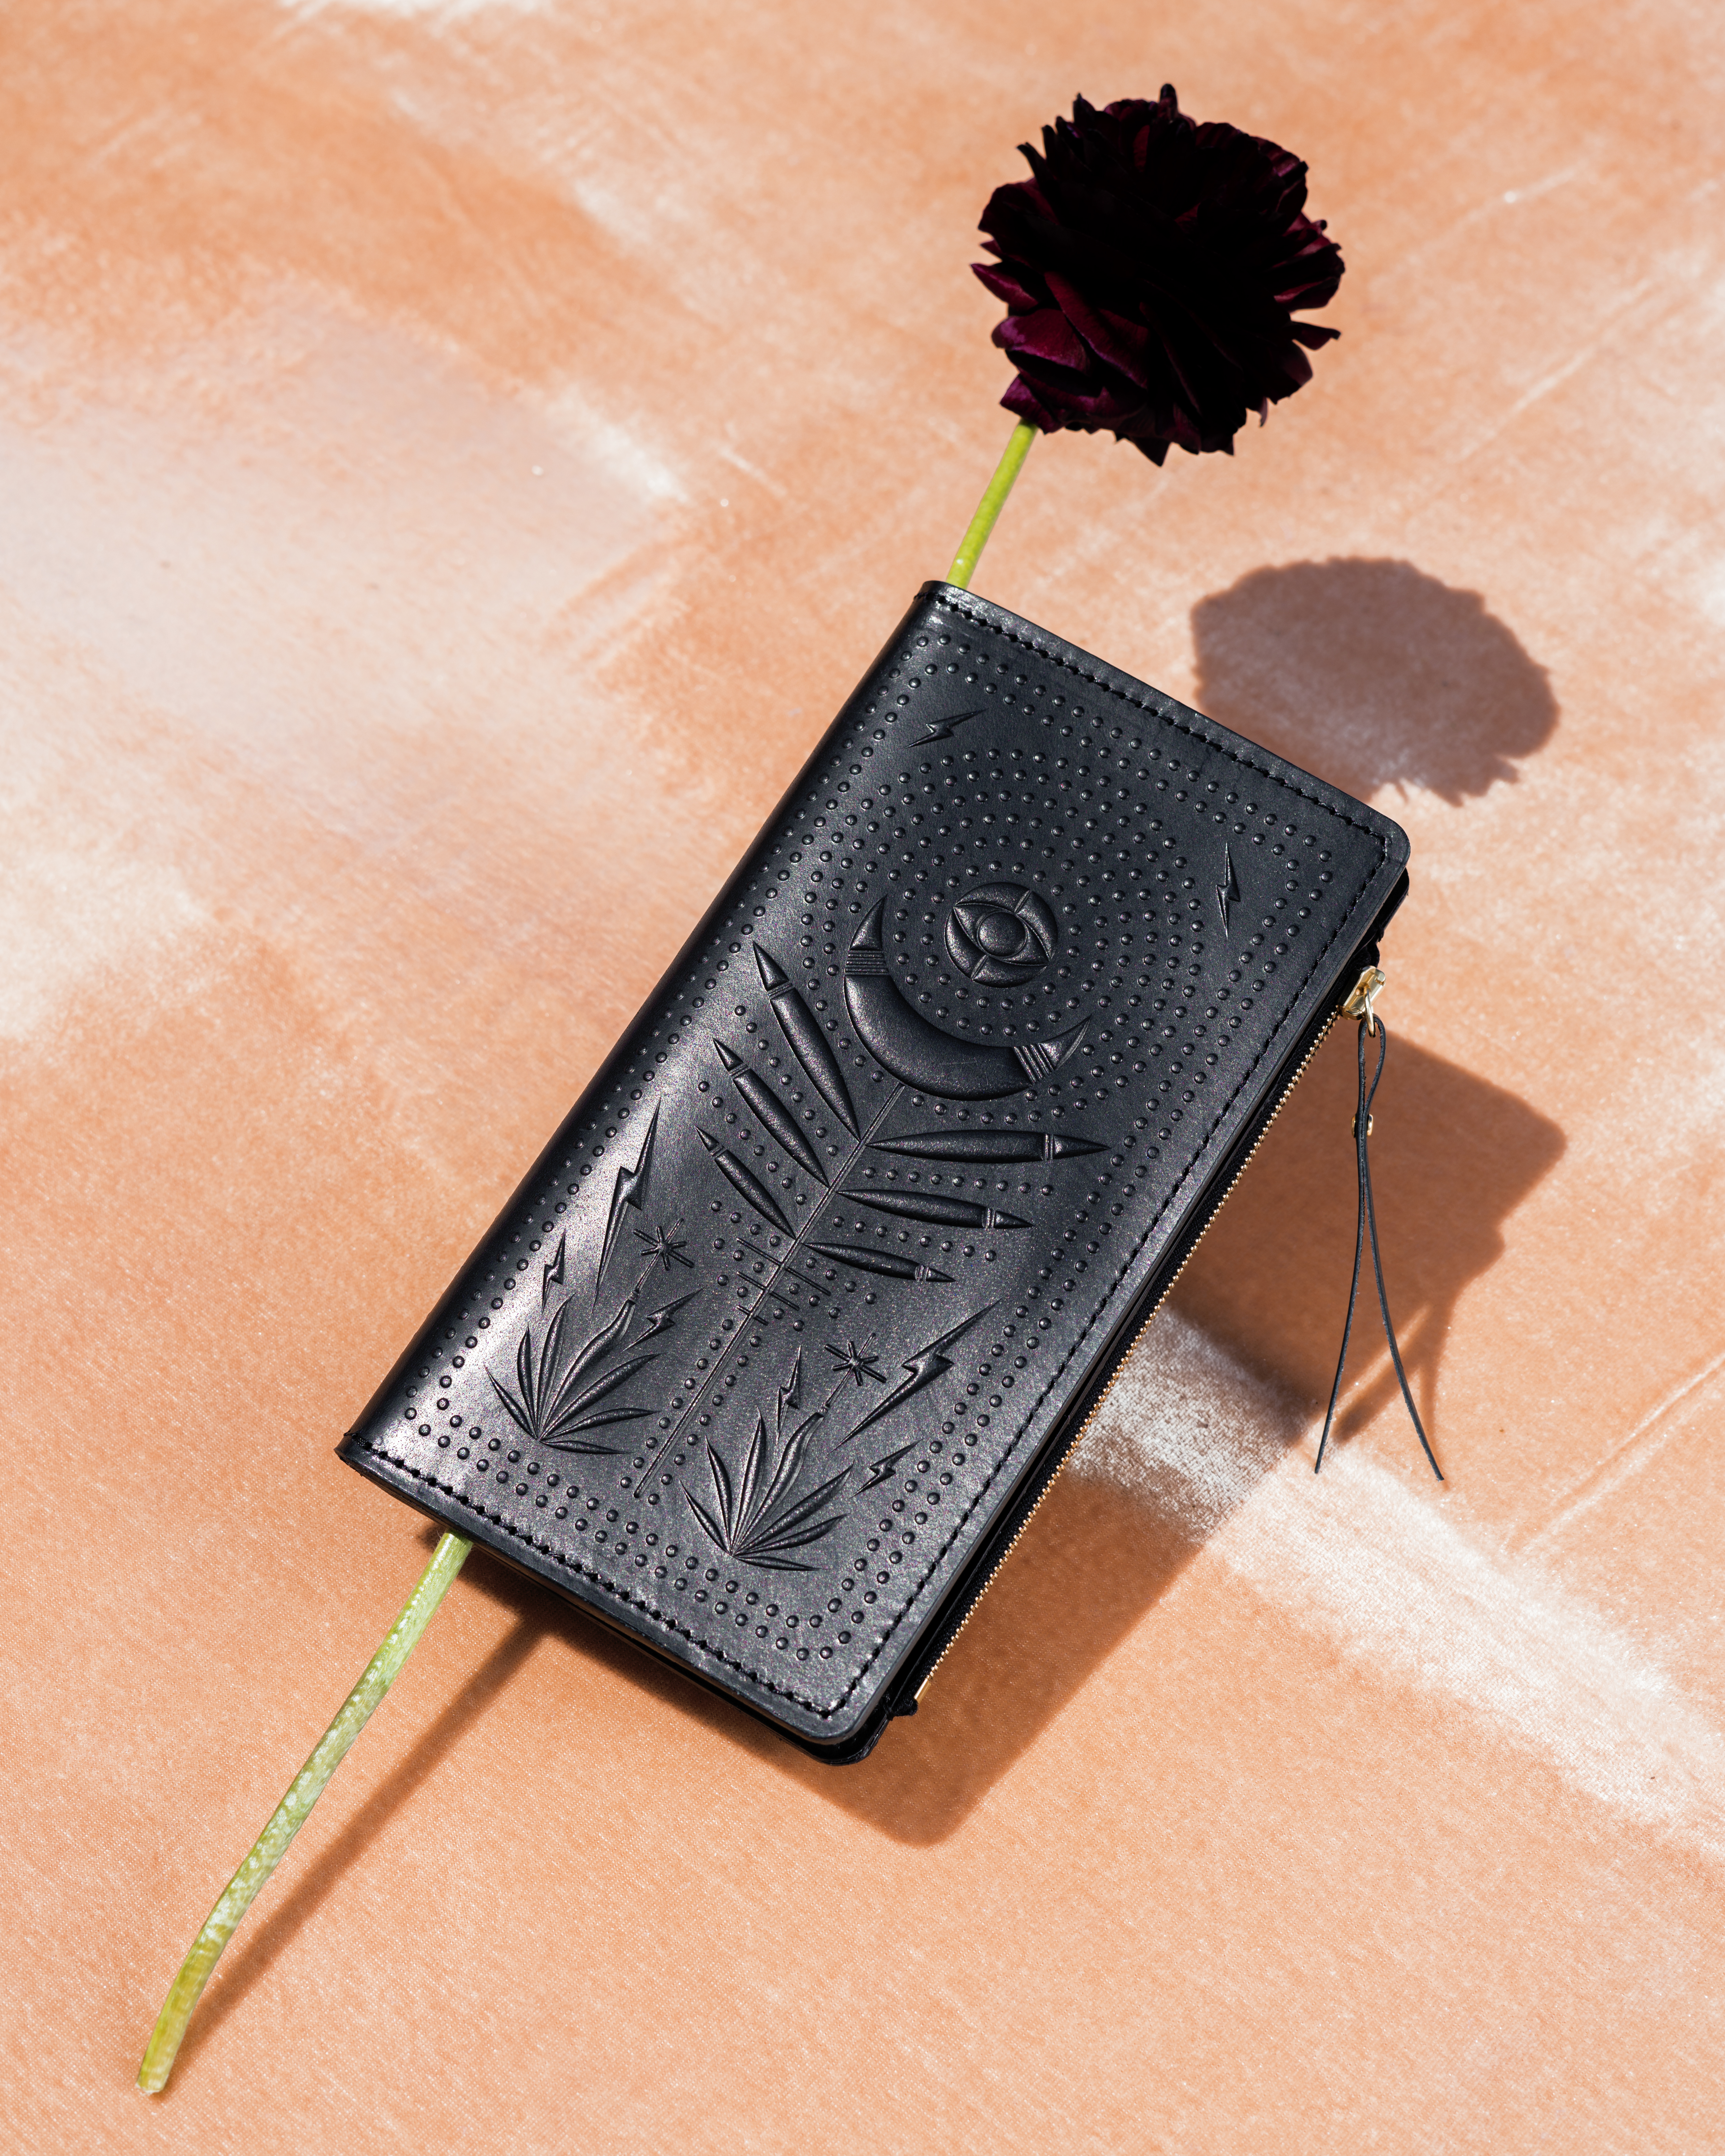 Black zip wallet with mystical design and a flower tucked inside the wallet. It's photographed under harsh light, which casts a shadow on the pink velvet backdrop the wallet is photographed on.